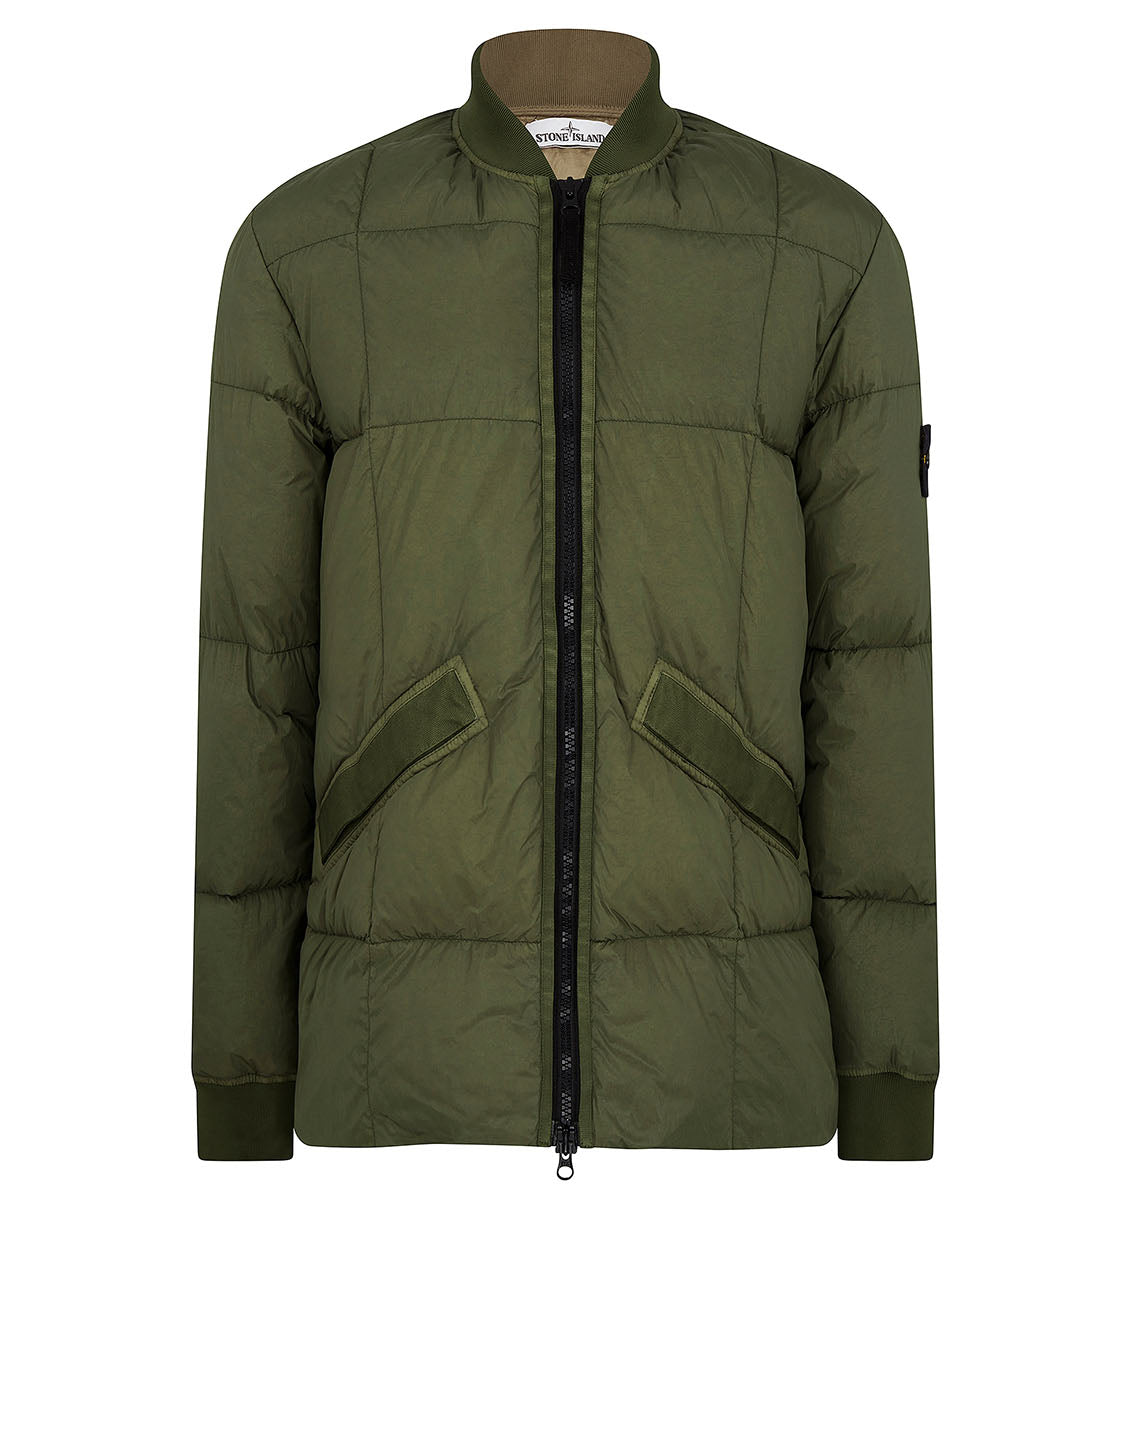 40423 Garment Dyed Crinkle Reps NY Down Jacket in Olive